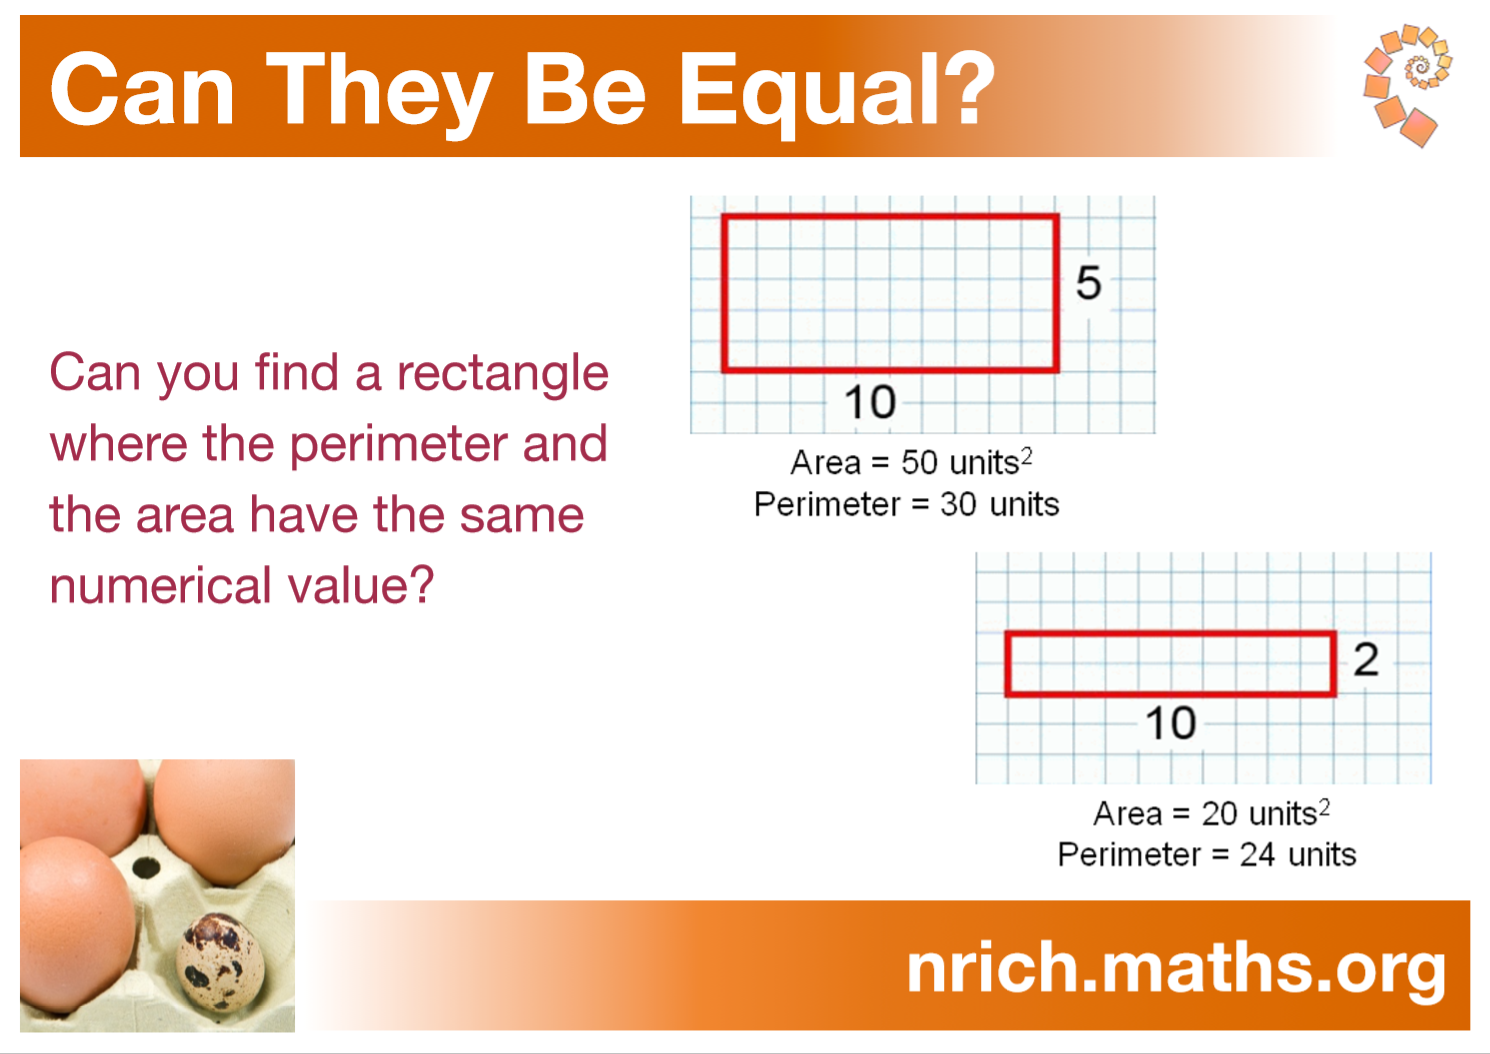 Can They Be Equal? Poster : nrich.maths.org